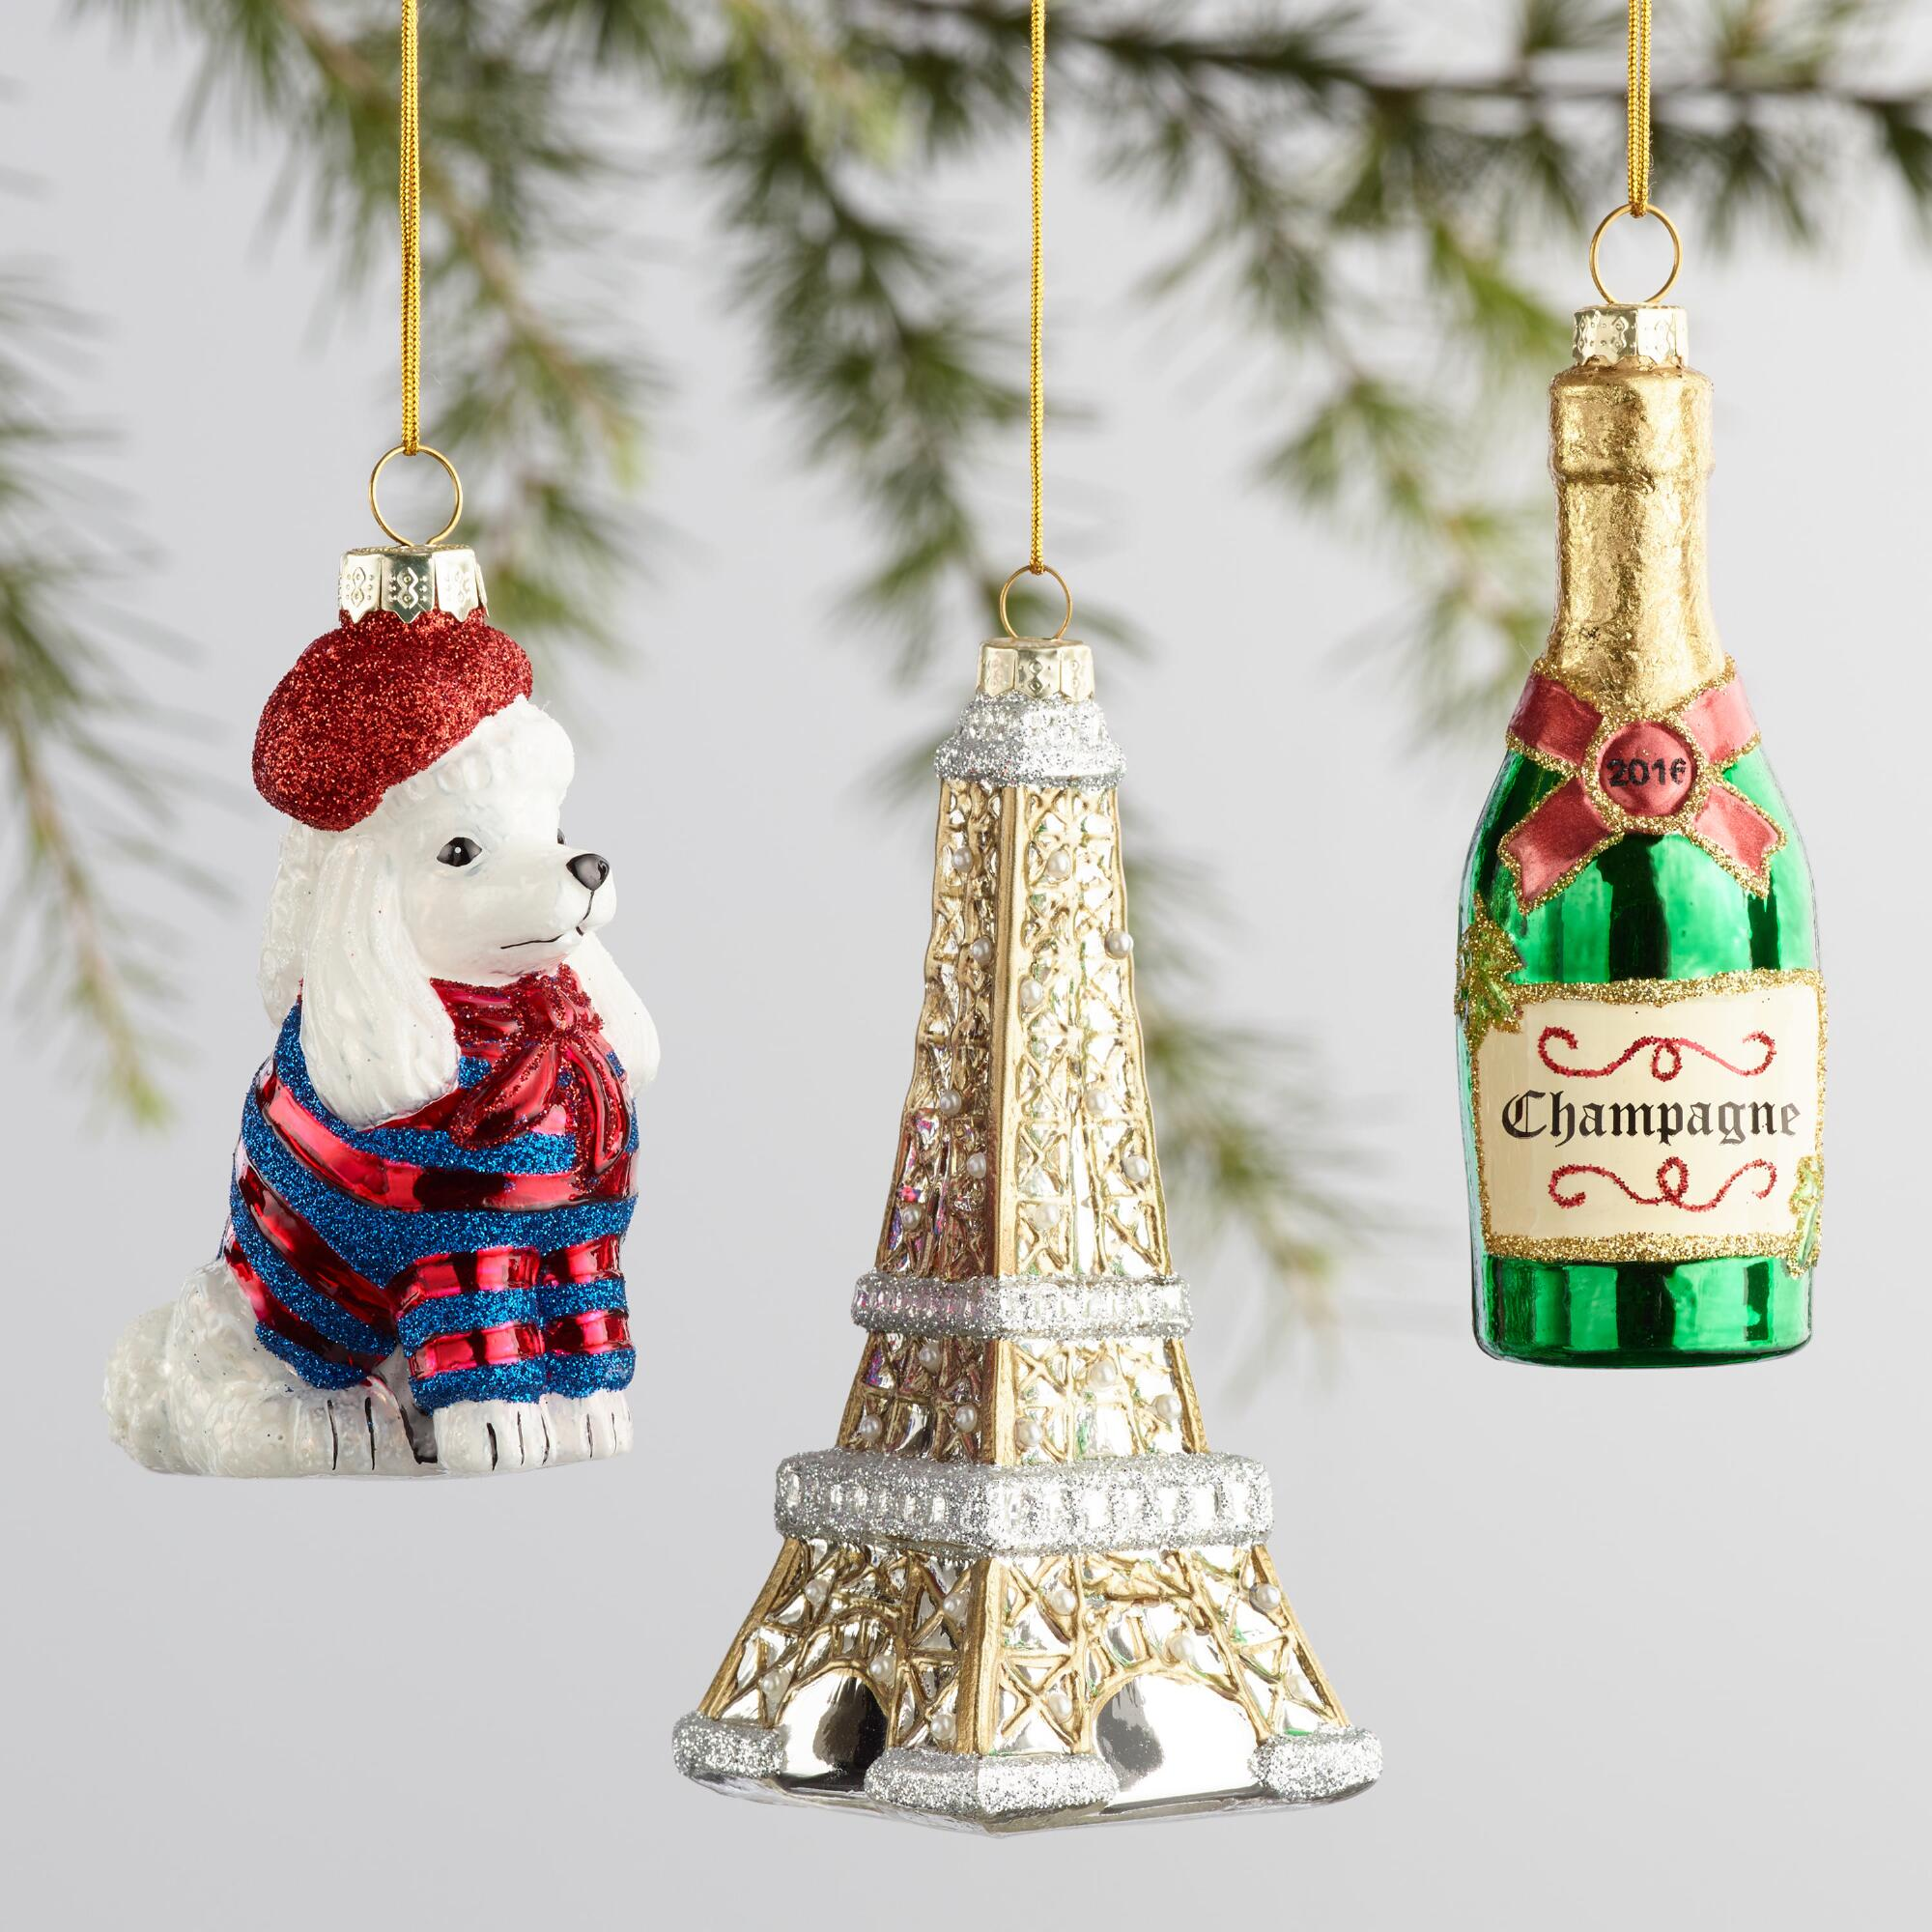 champagne-eiffel-tower-poodle-ornaments